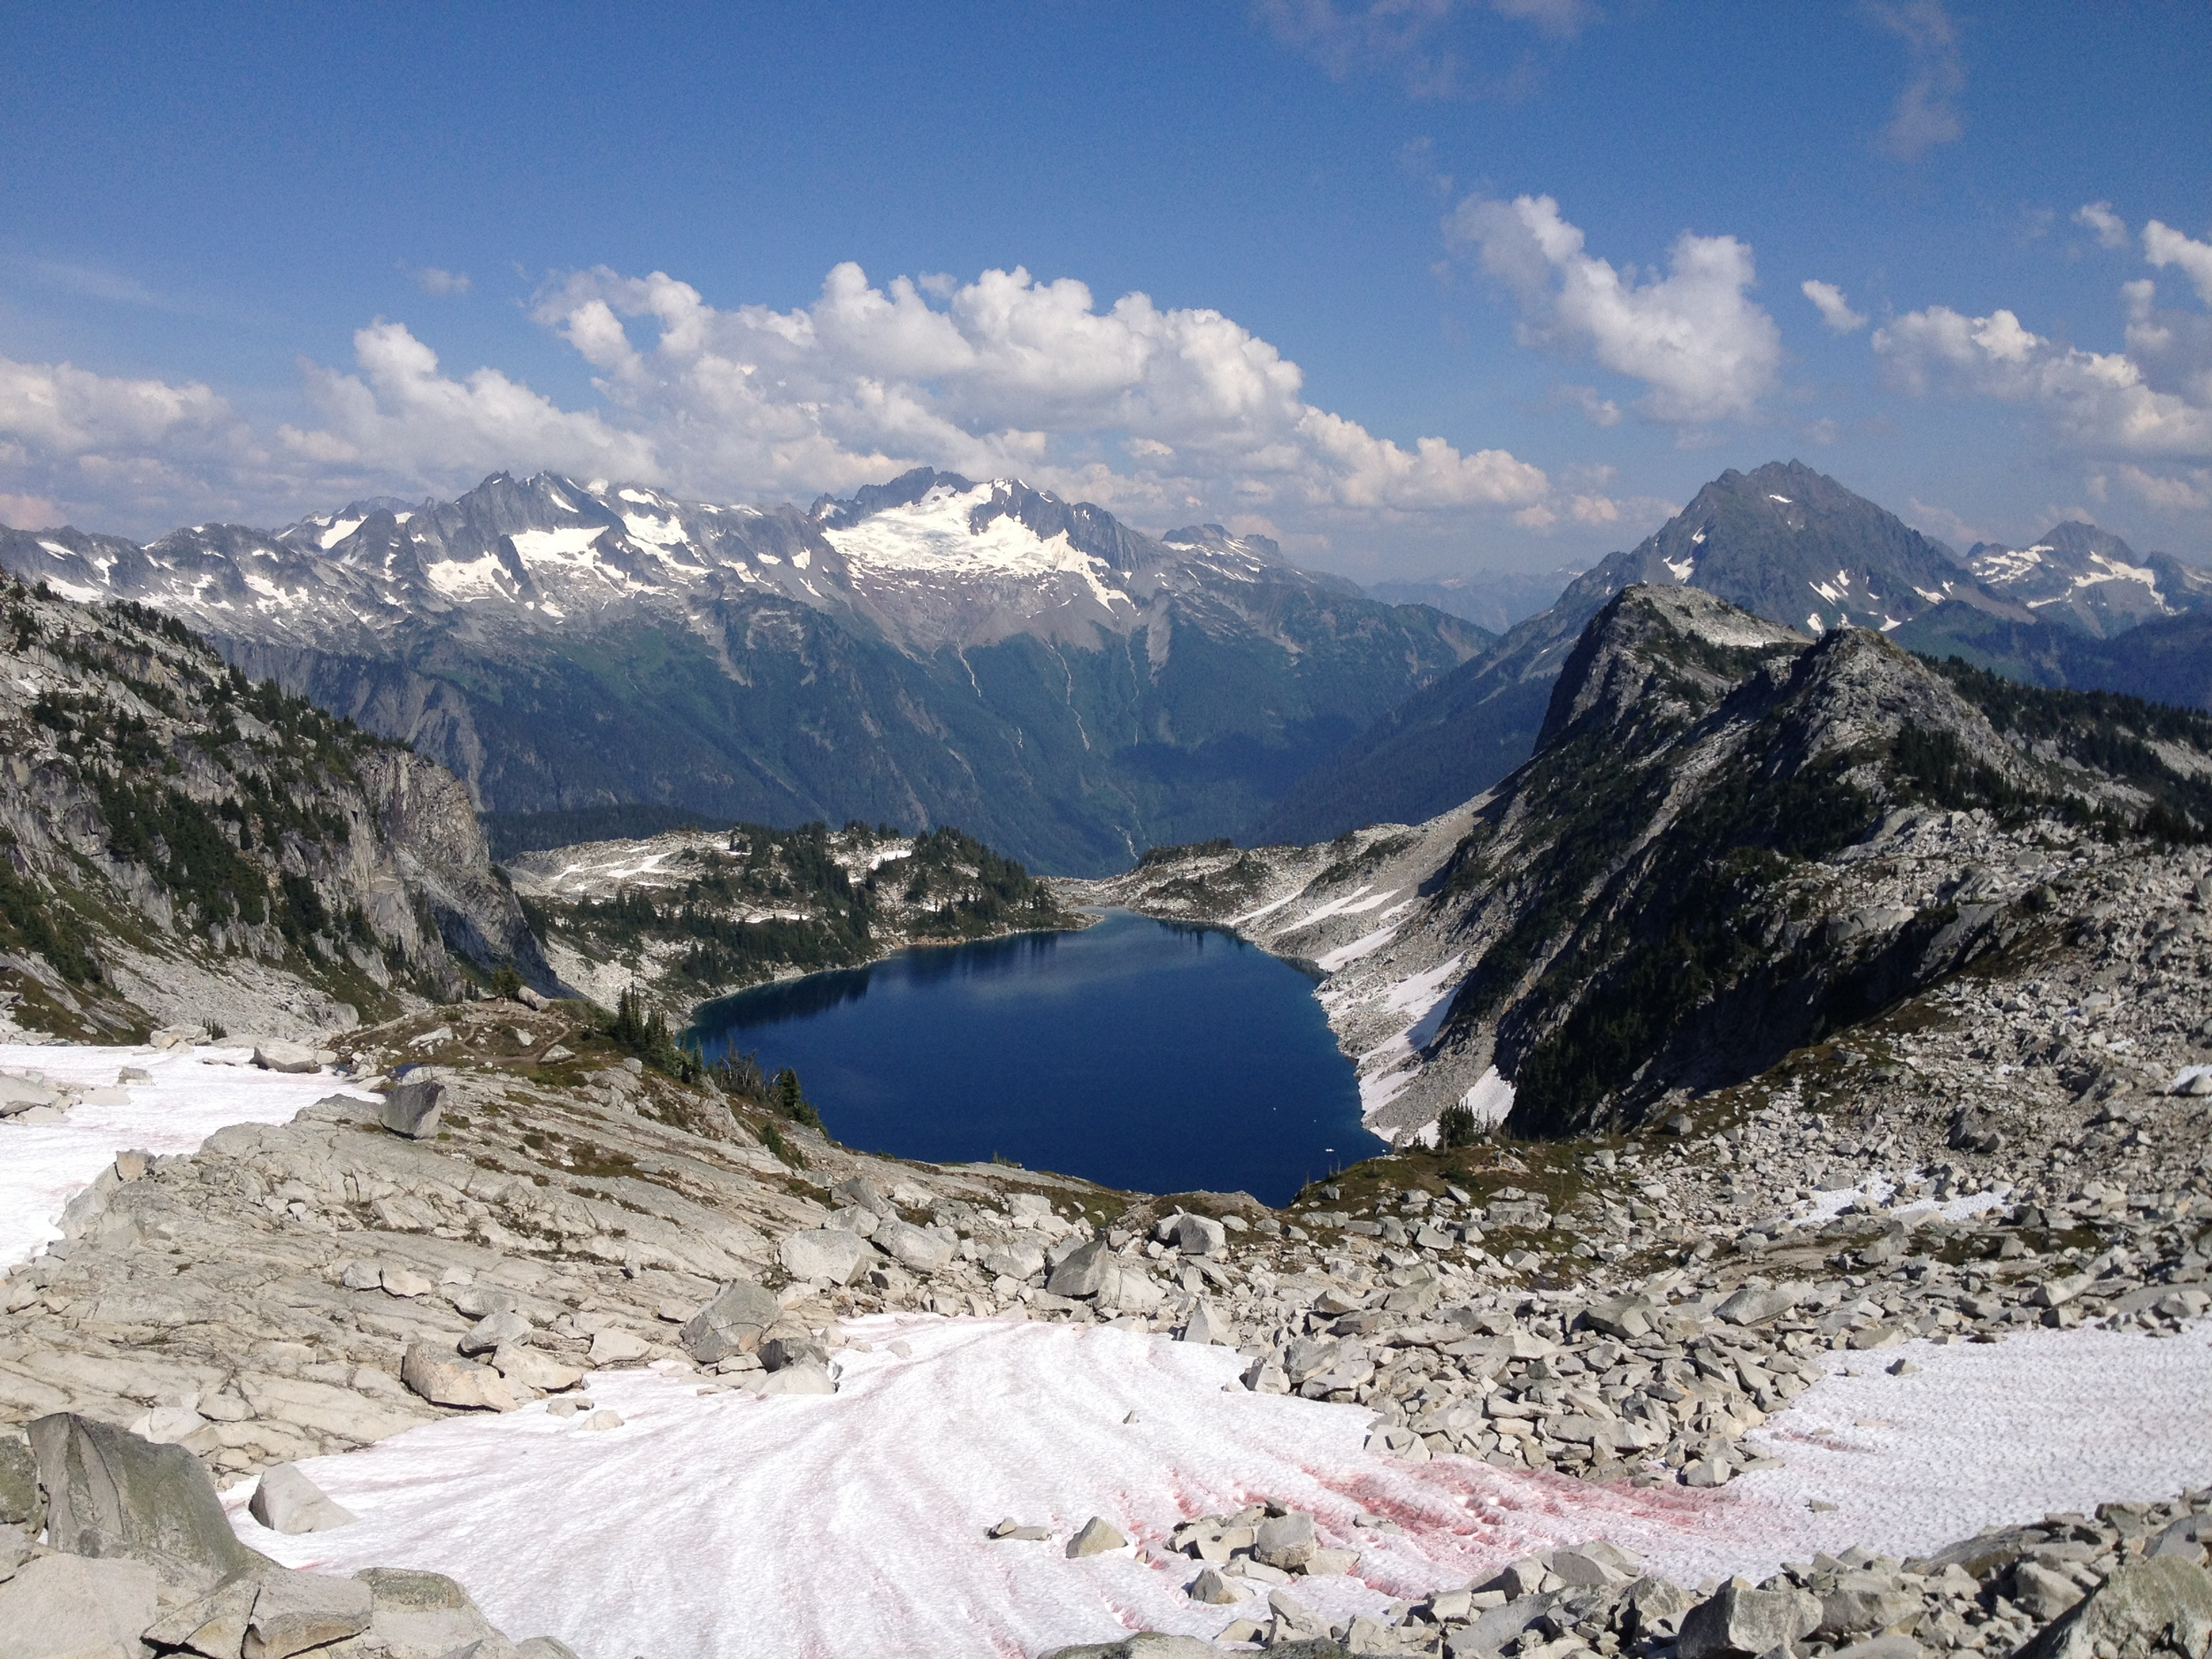 The reward at the top was spectacular - Hidden Lake.